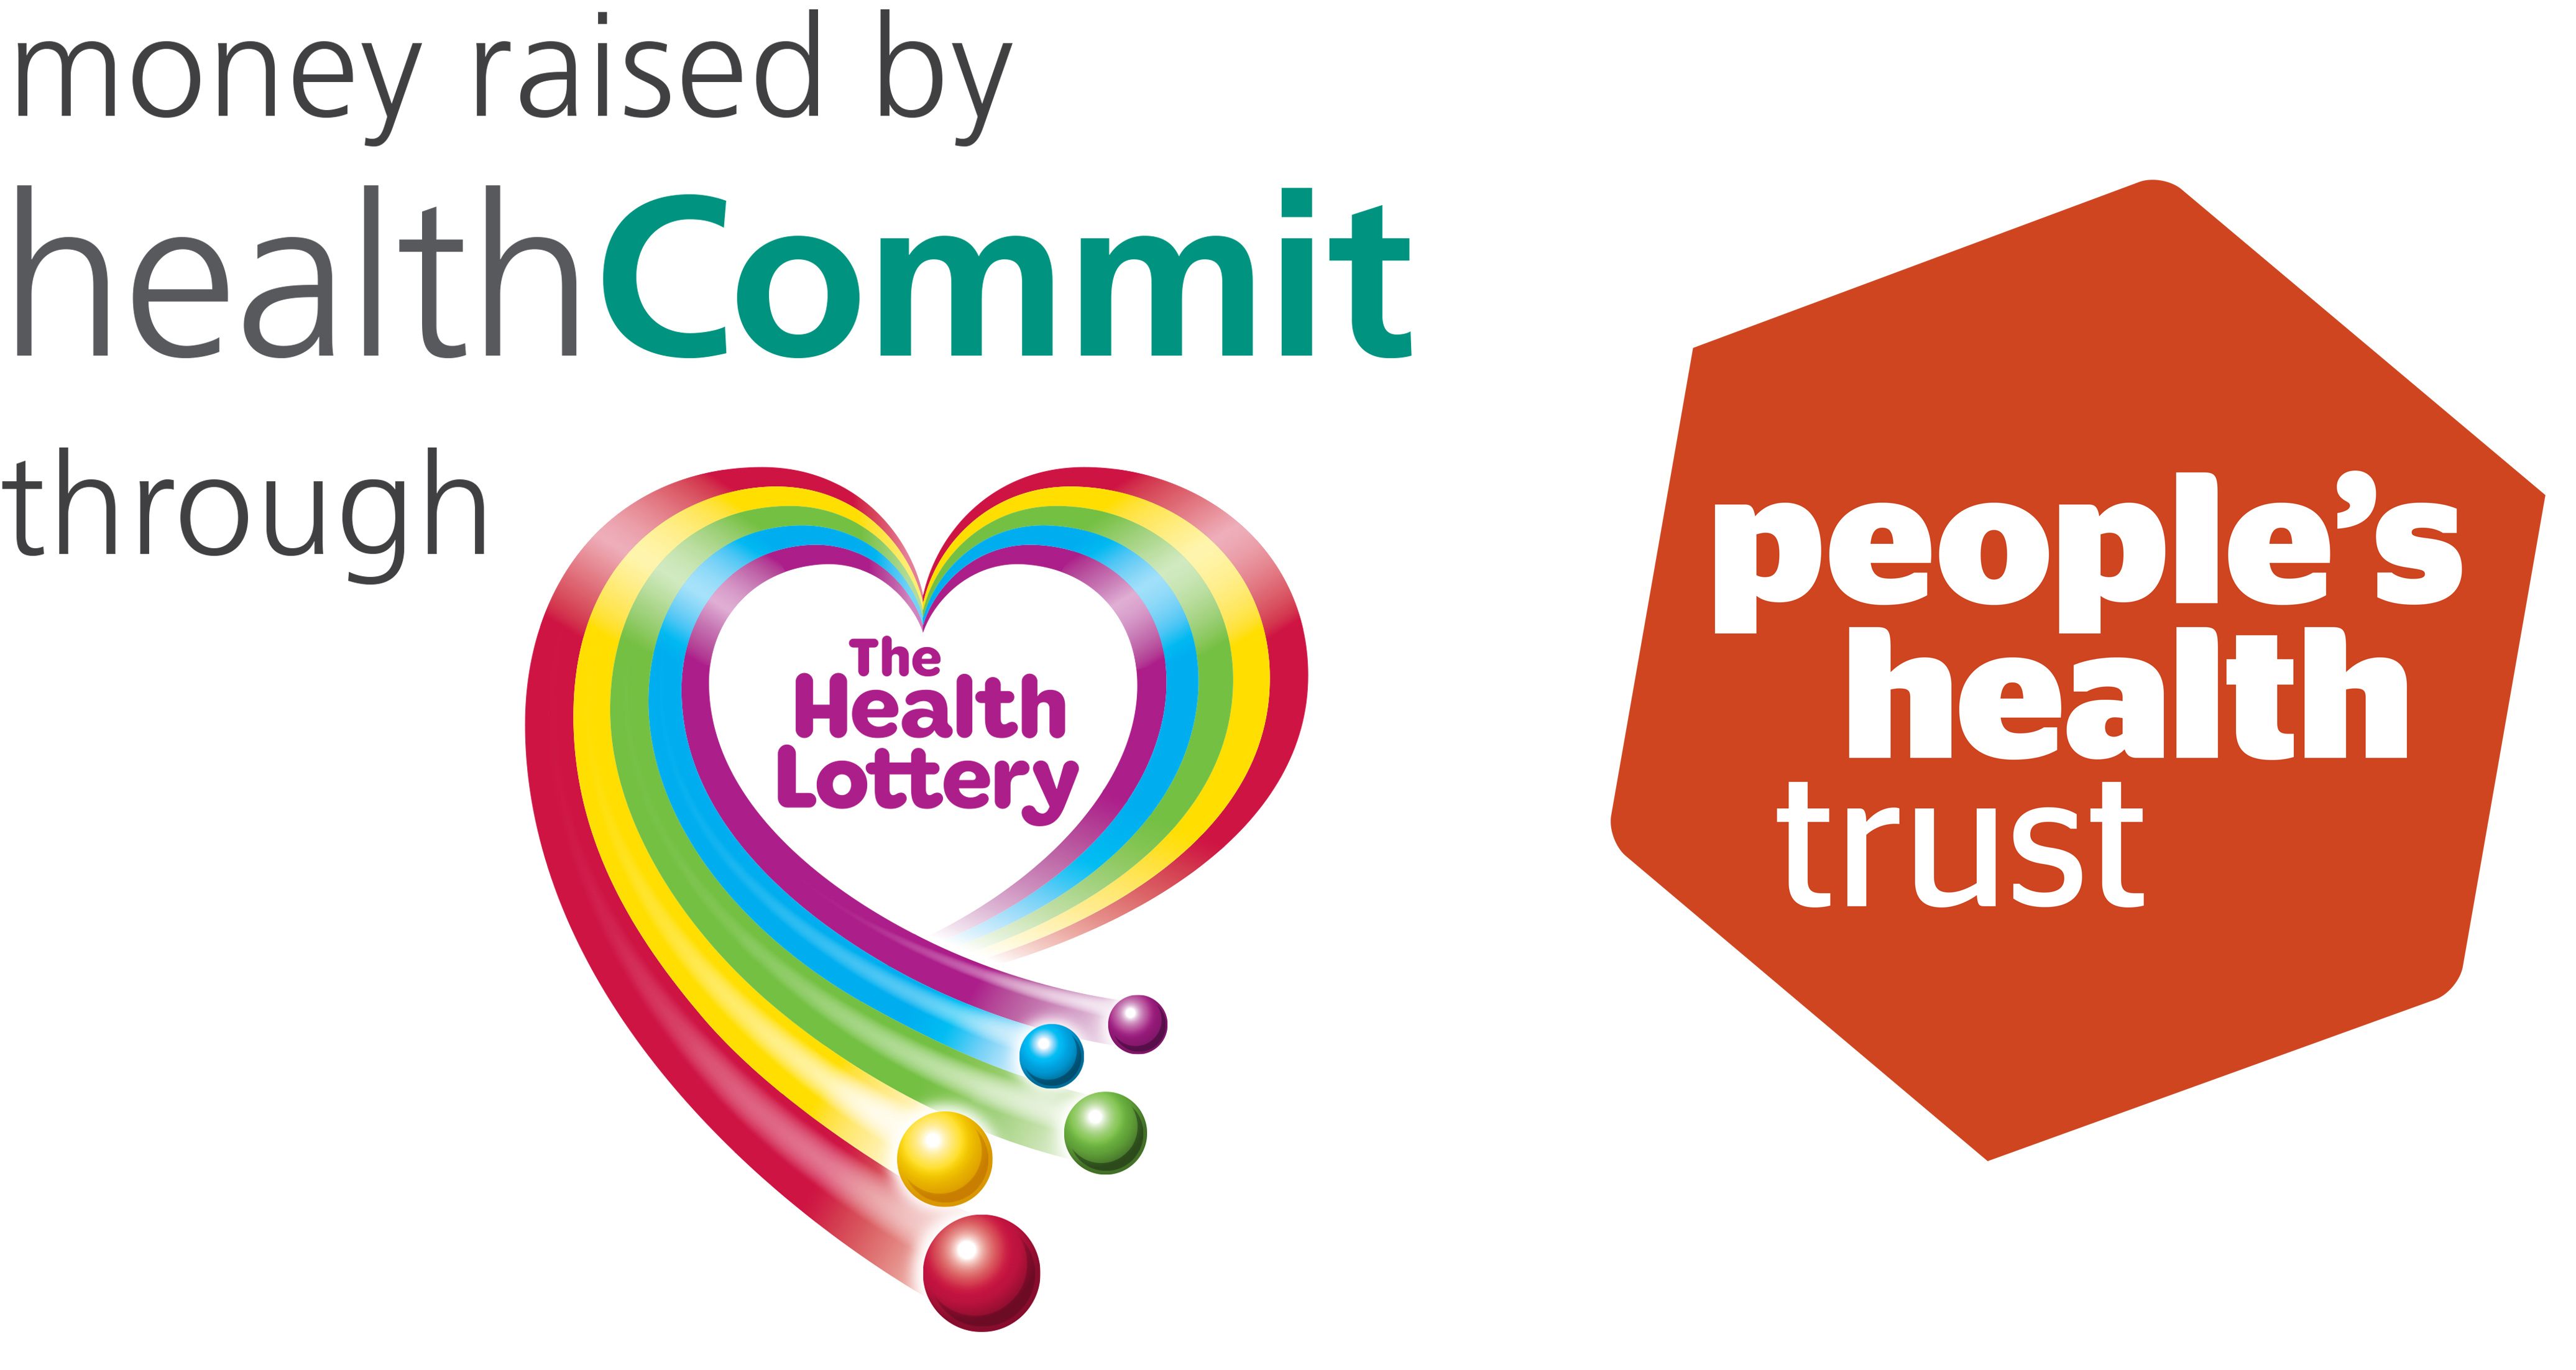 HealthCommit and People's Health Trust